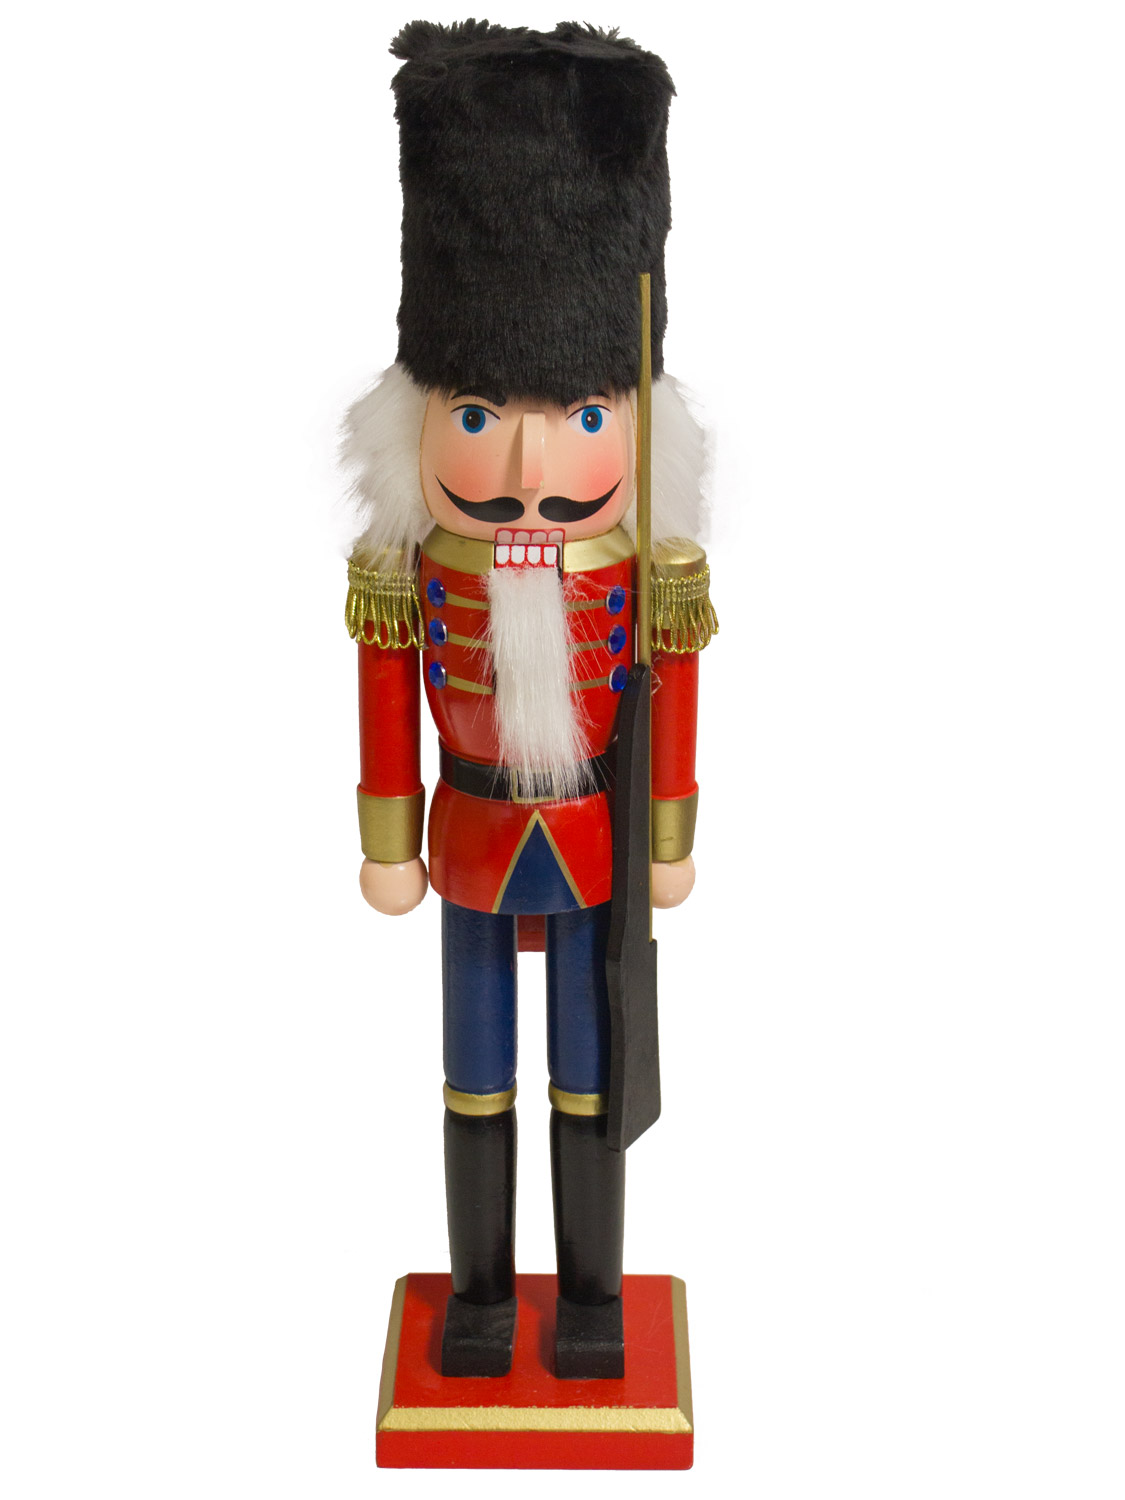 39cm 15 034 traditional wooden nutcracker soldier christmas